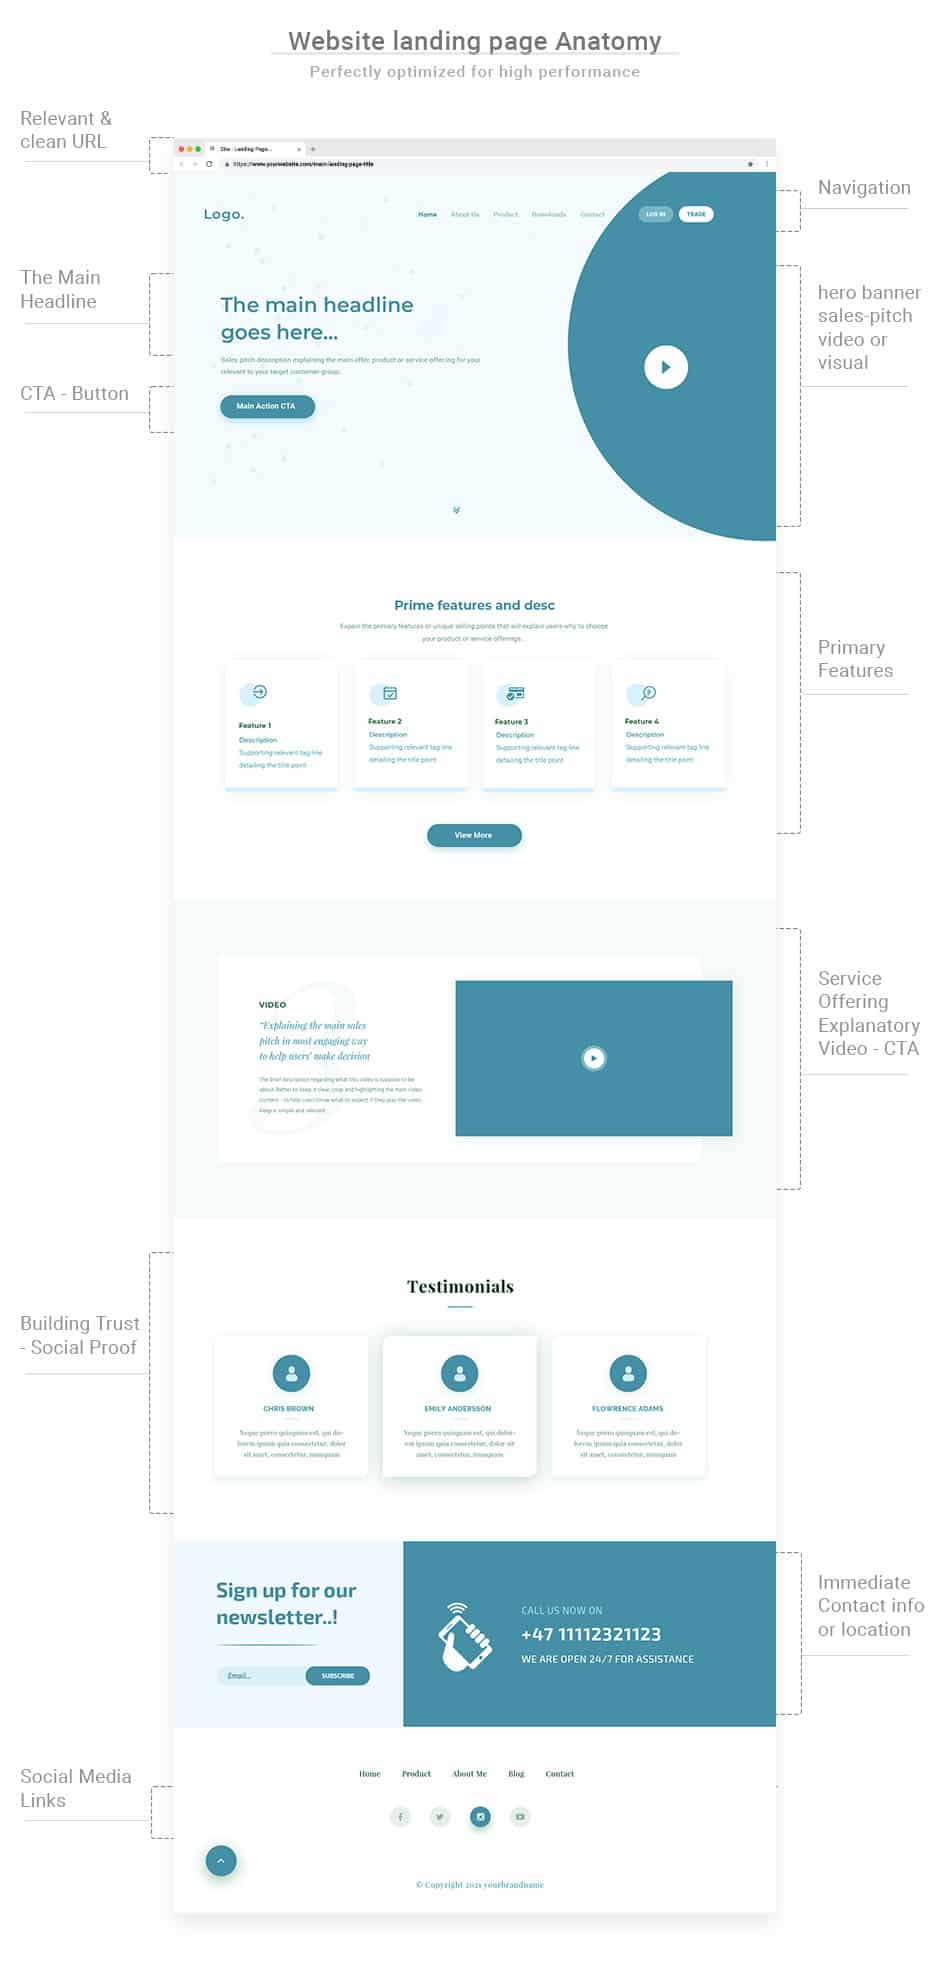 website landing page anatomy or structure